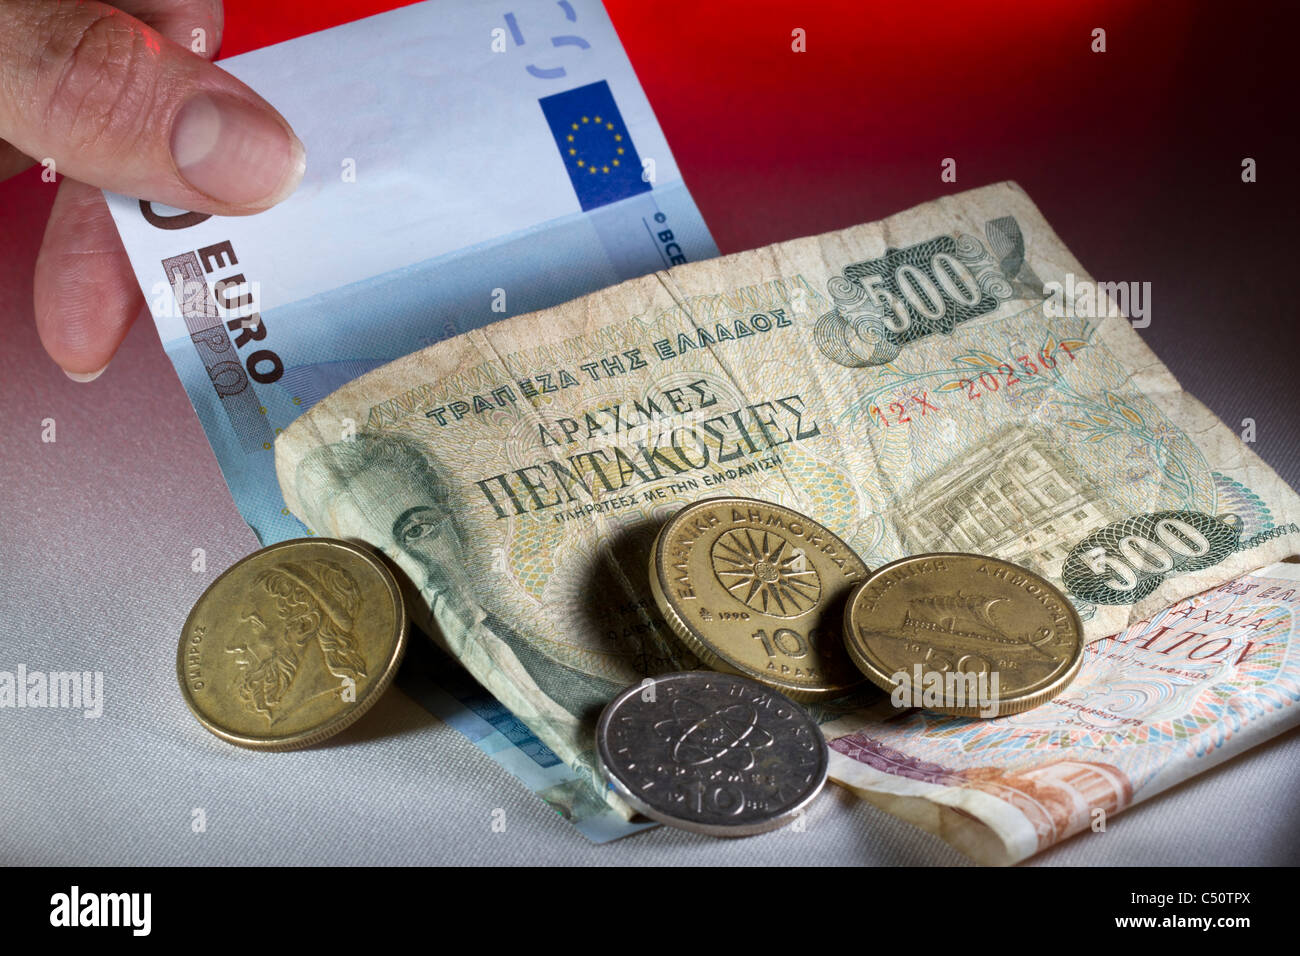 A hand pulling a euro note out from under a pile of Greek drachmas: out with the new, in with the old. - Stock Image